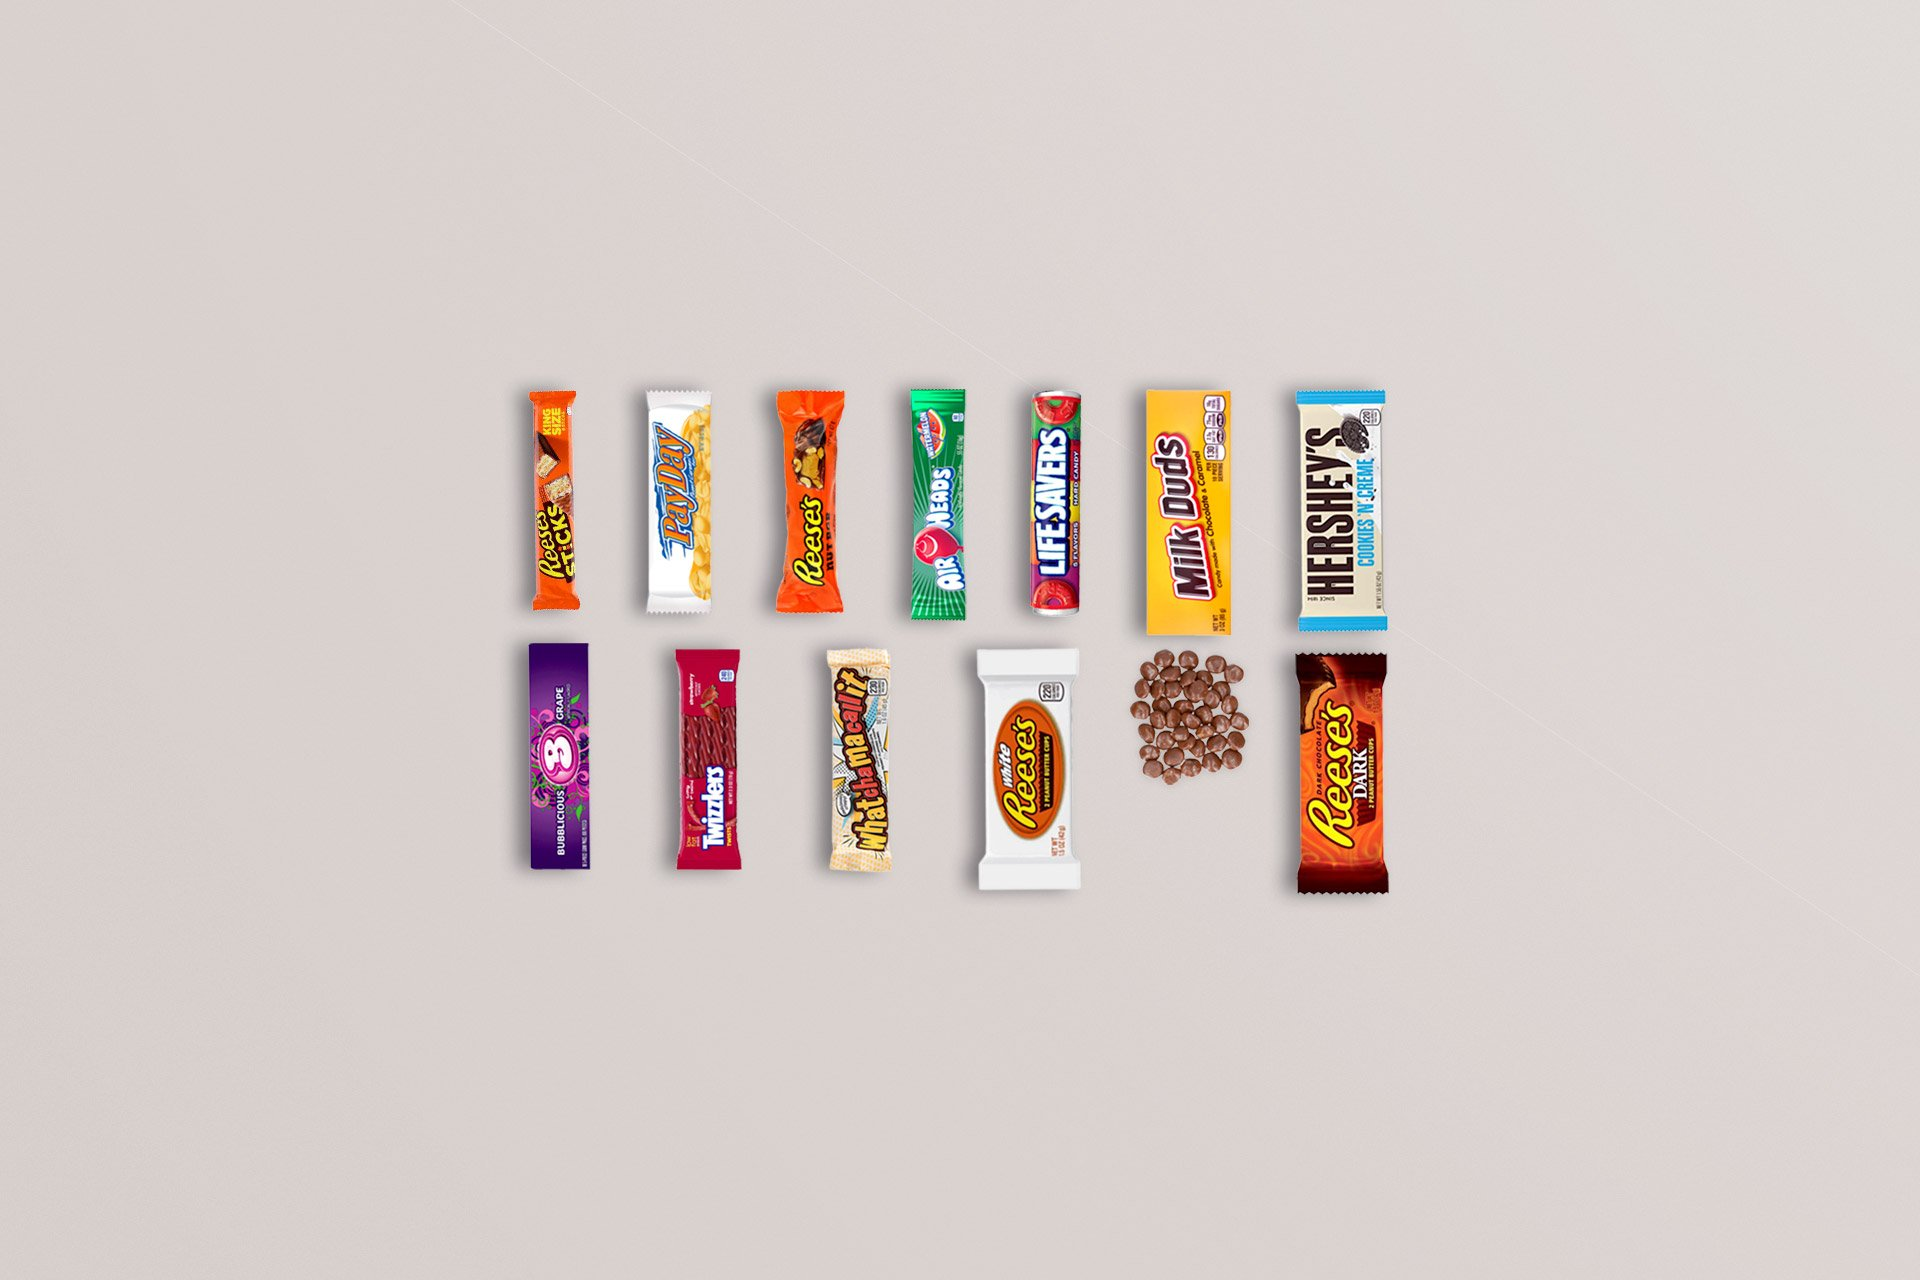 American-Sweets-Testbox